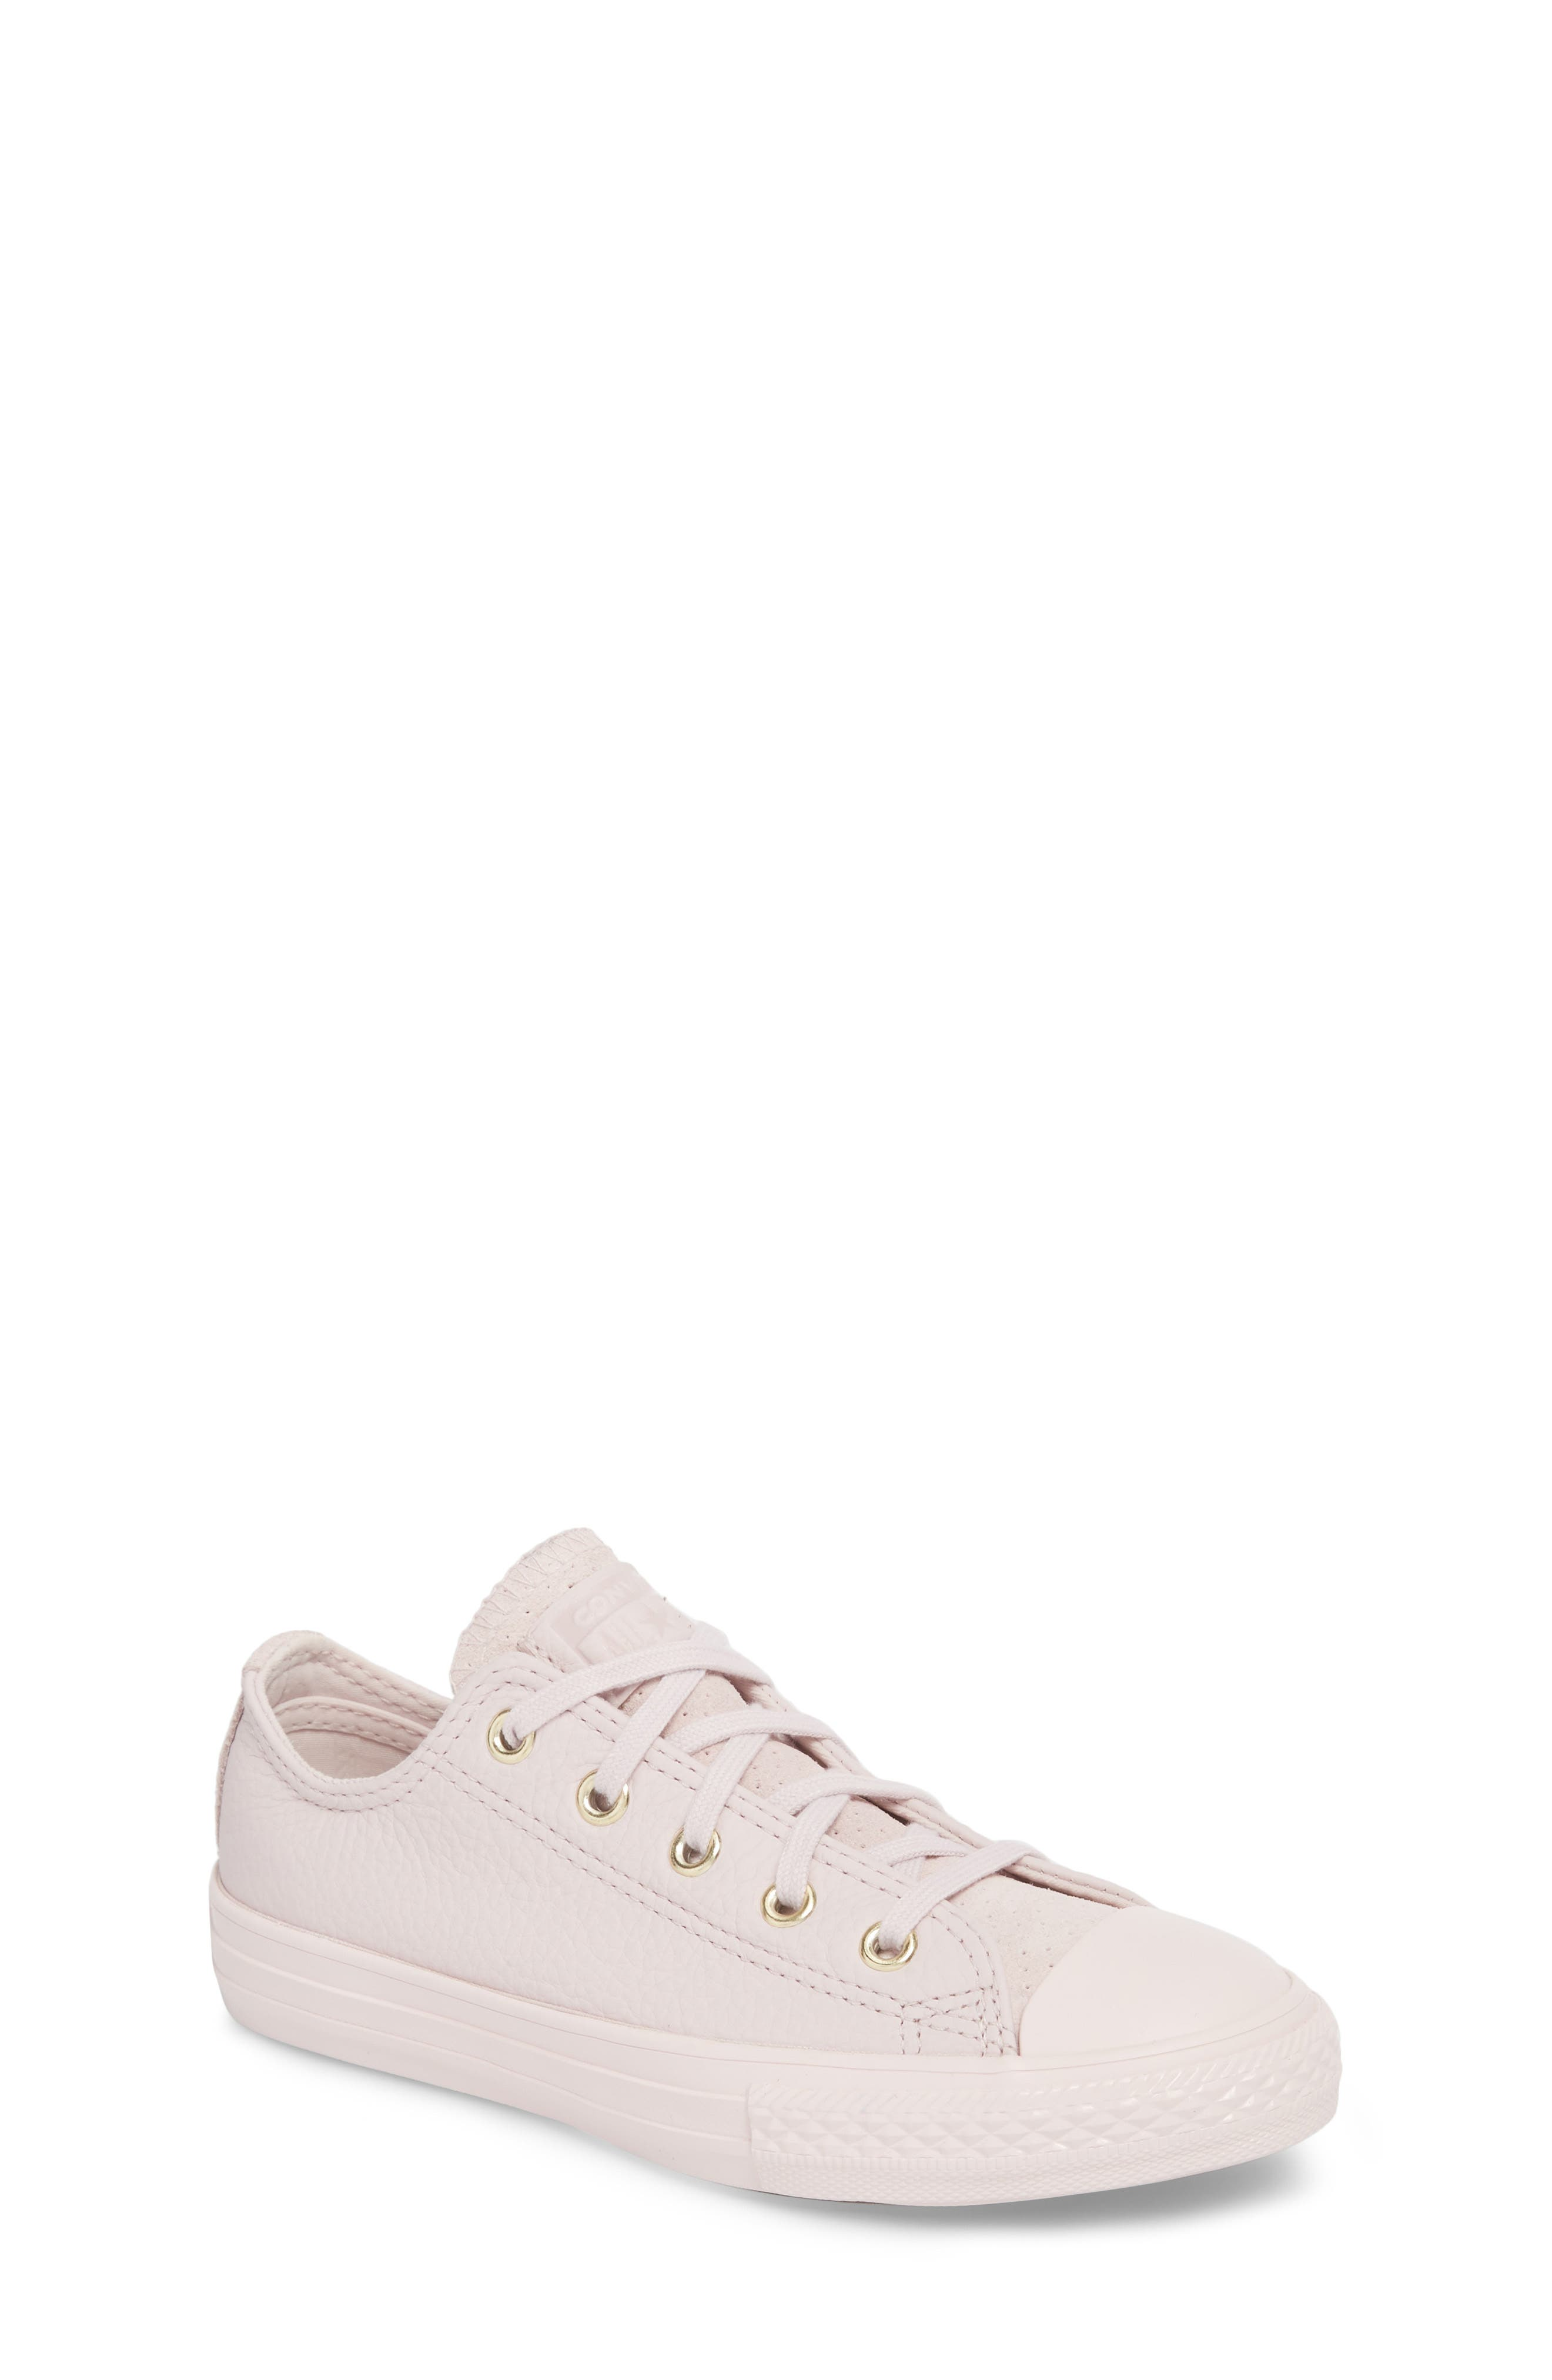 Chuck Taylor<sup>®</sup> All Star<sup>®</sup> Mono Low Top Sneaker,                             Main thumbnail 1, color,                             653